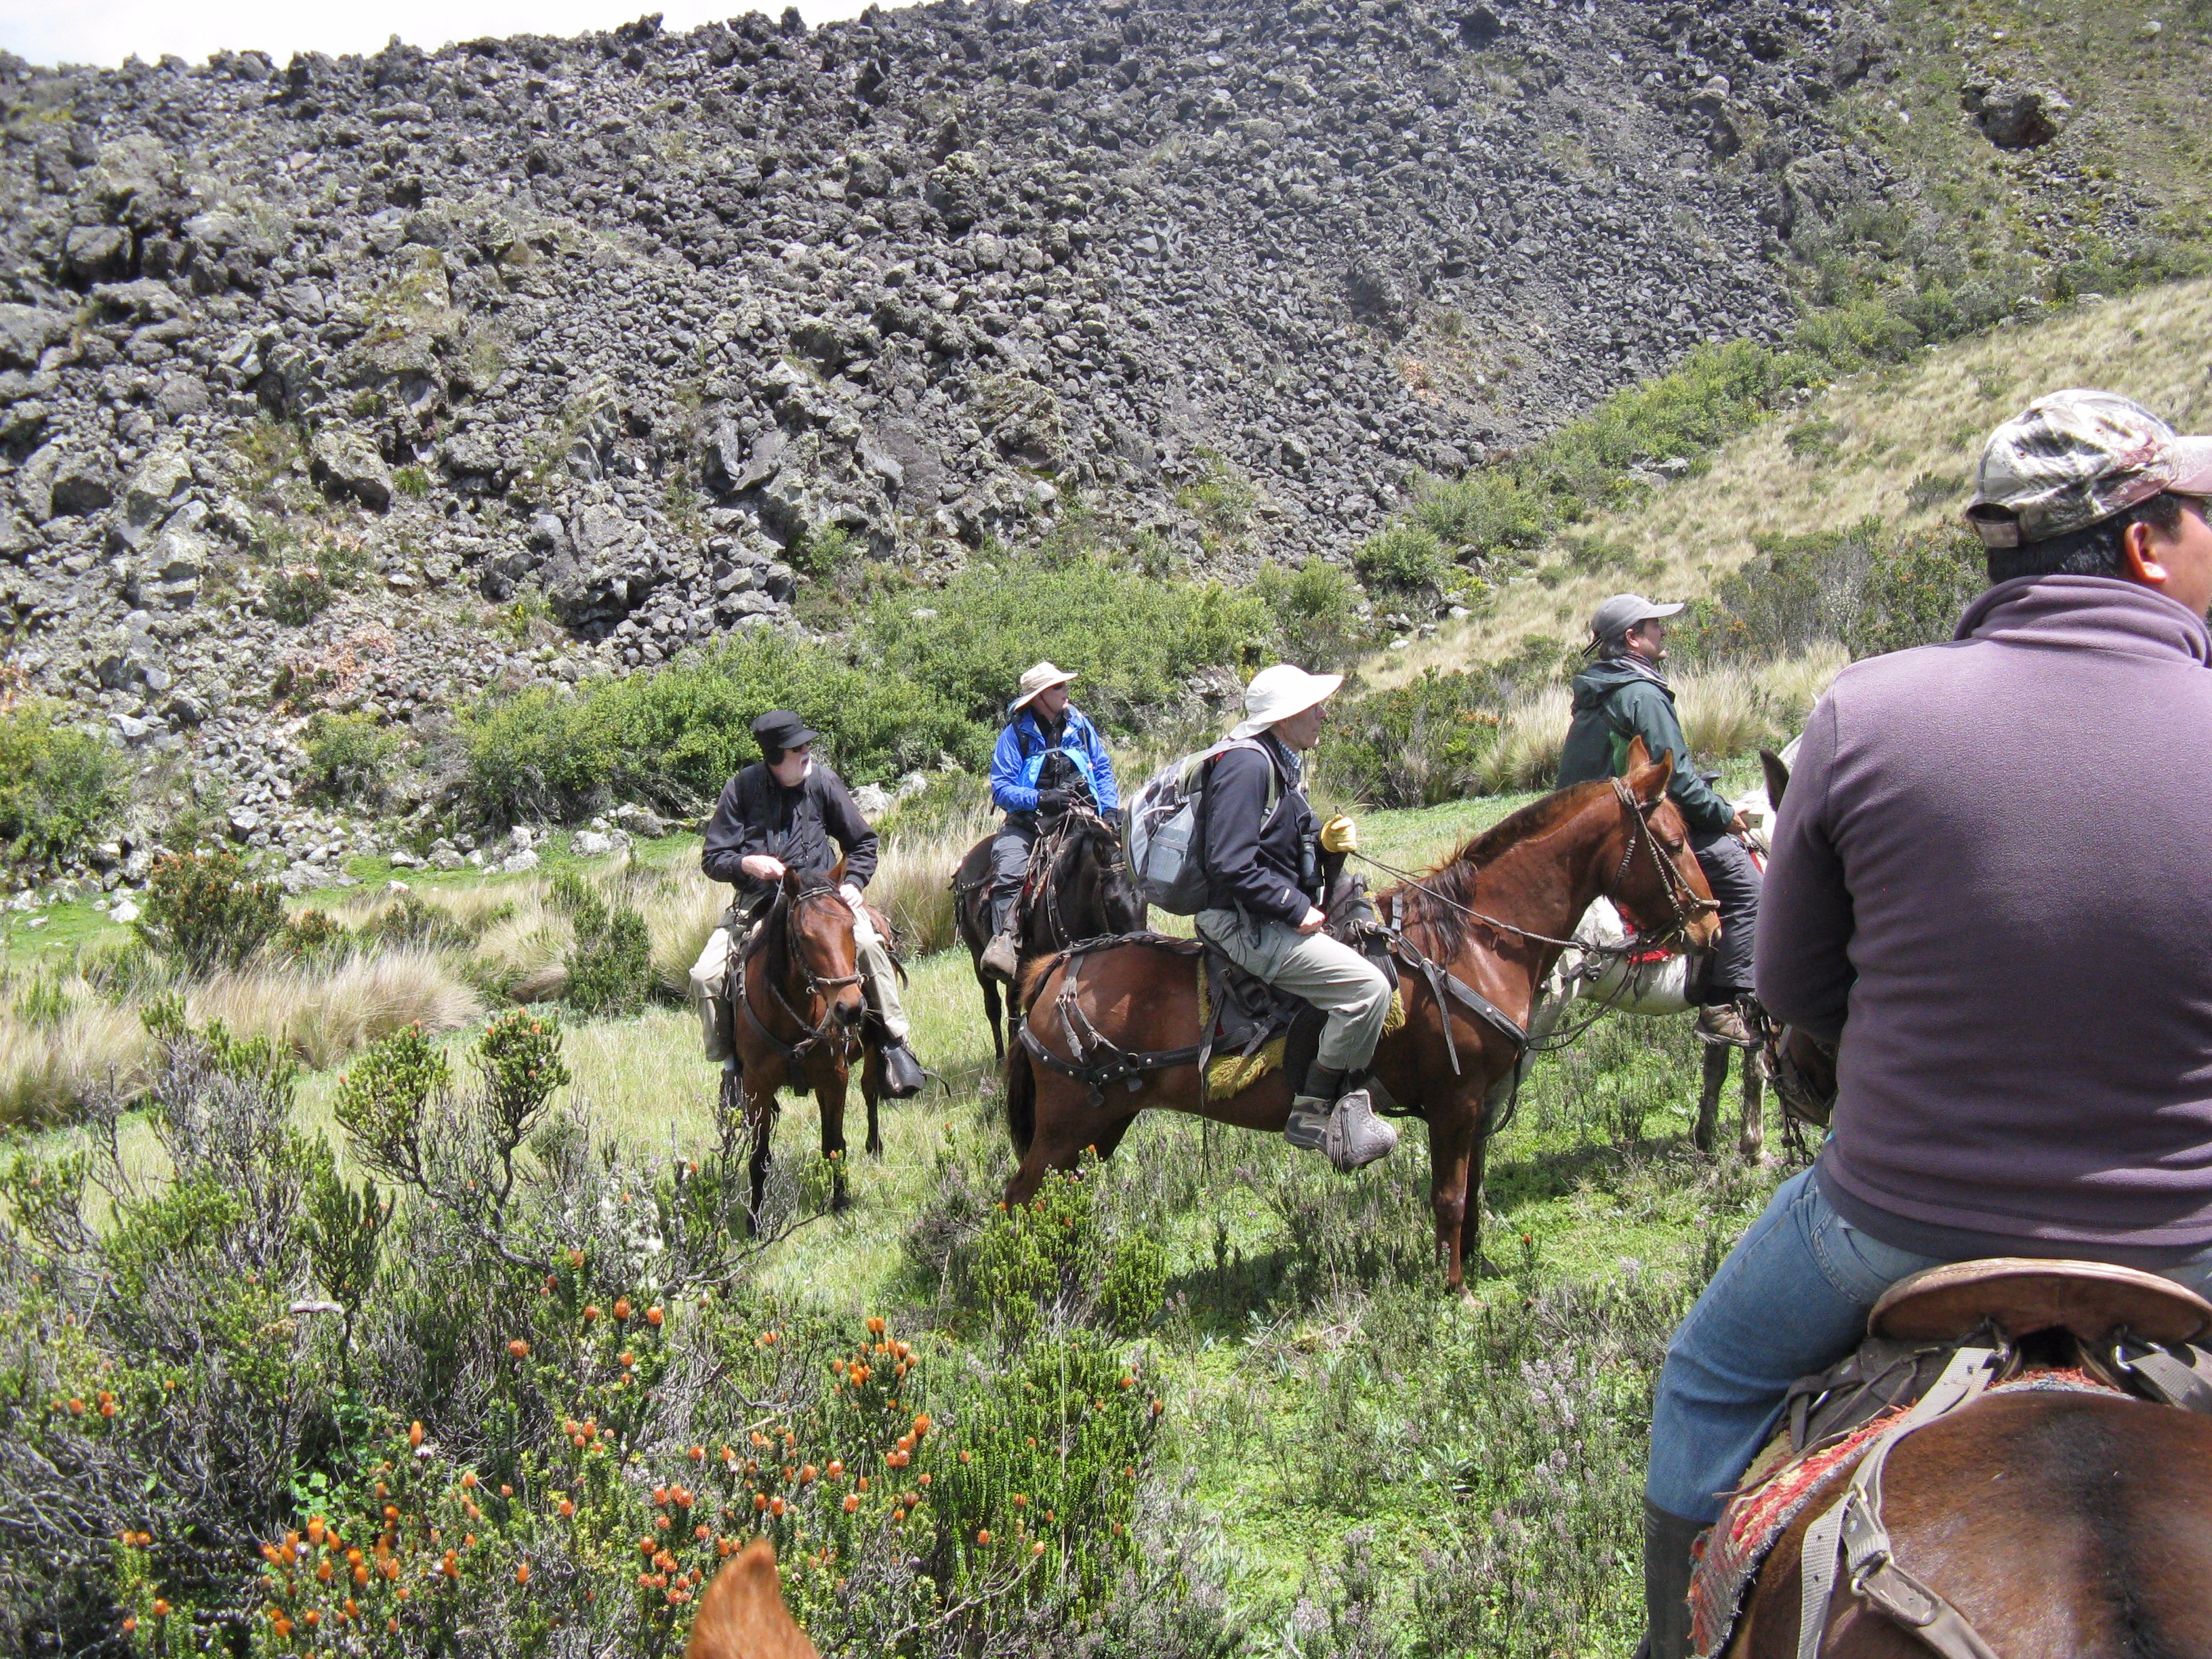 Horseback adventure for the team in Ecuador.